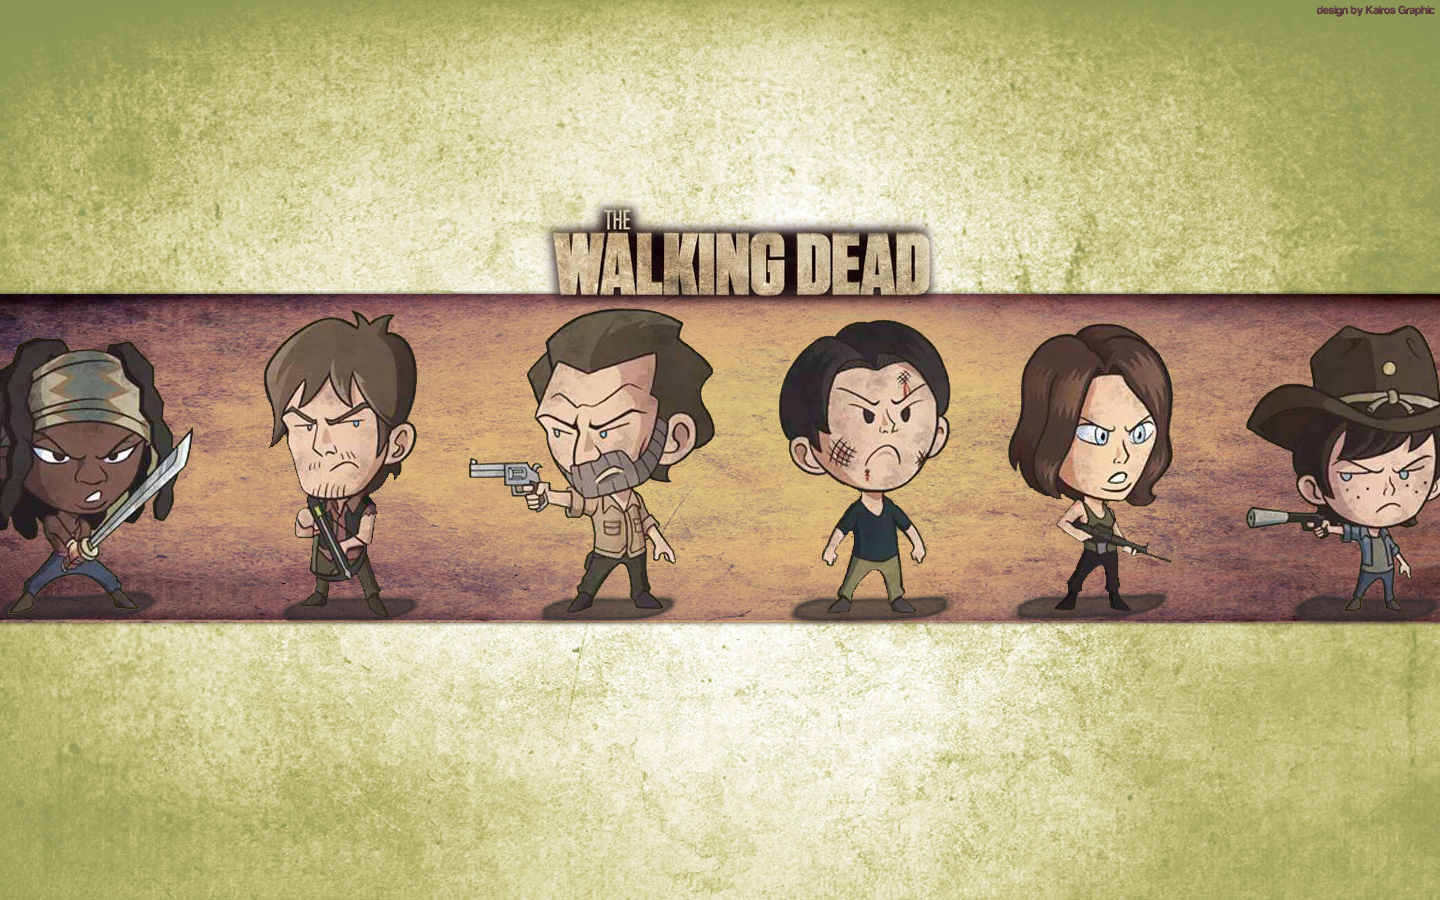 The Walking Dead Wallpaper 1440x900 By Kairosgraphic On